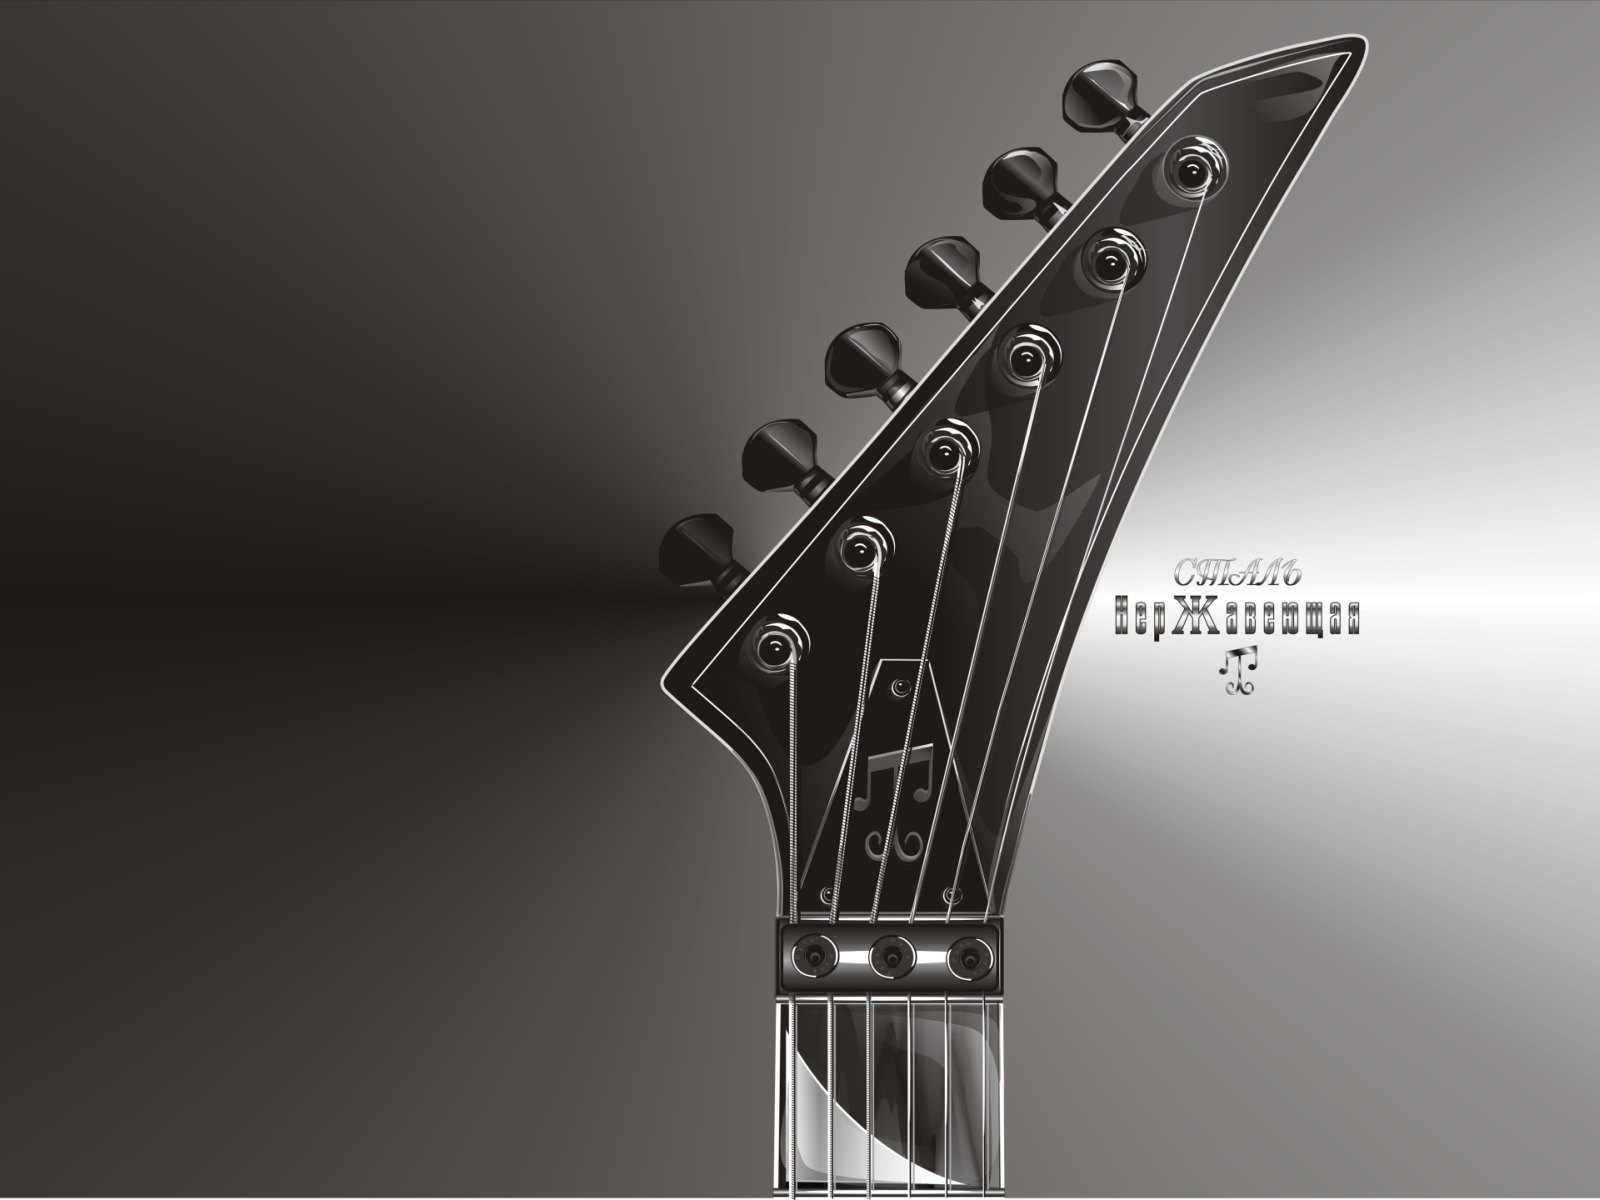 Ibanez Guitar Wallpaper: Amazing Ibanez Electric Guitar HD Wallpaper Picture Free